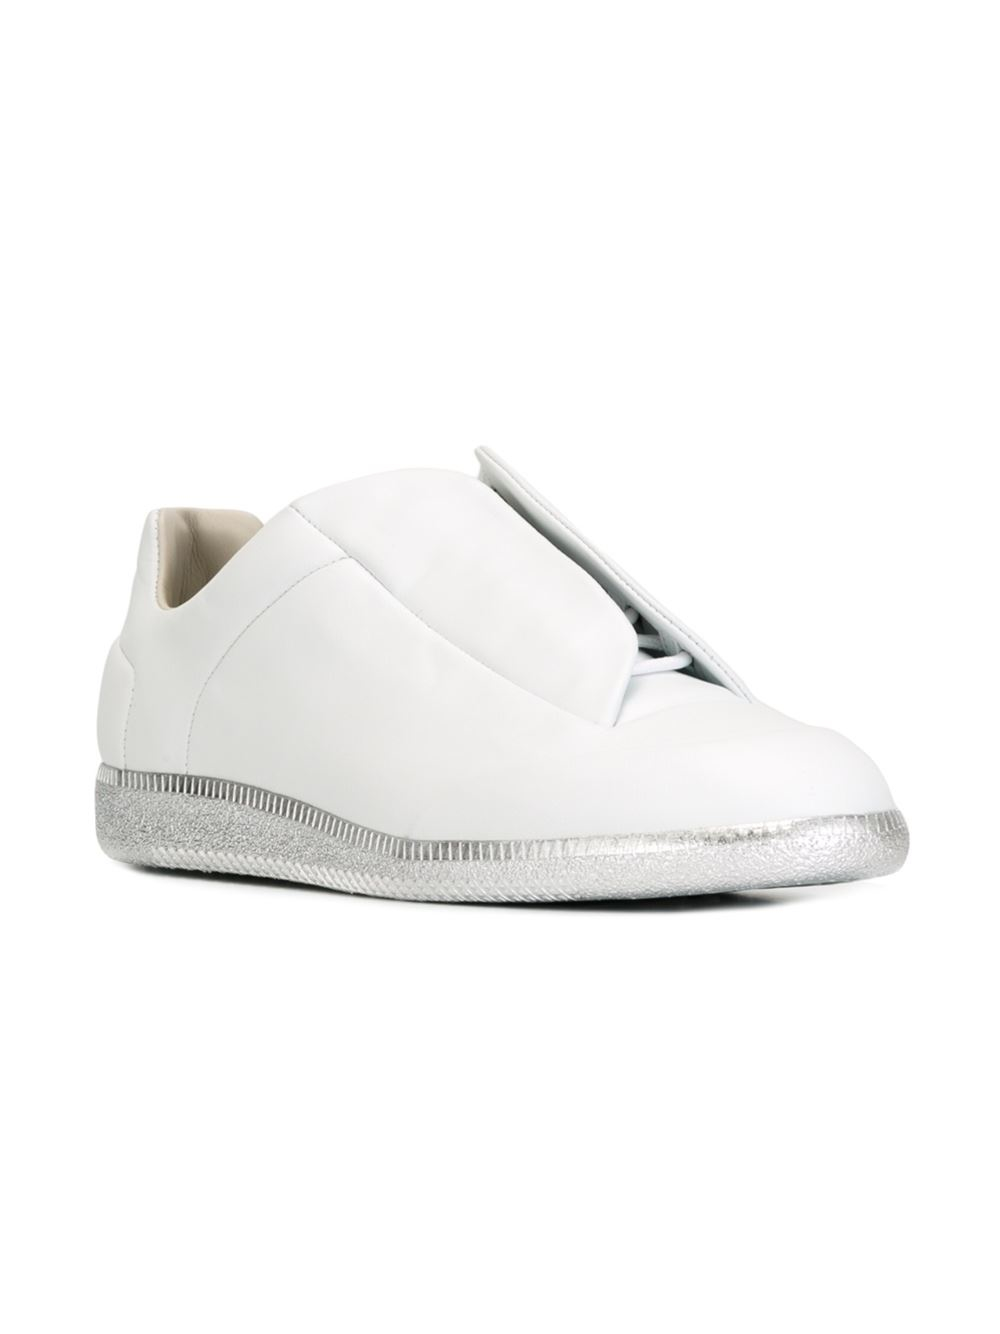 maison margiela 39 future 39 sneakers in white for men lyst. Black Bedroom Furniture Sets. Home Design Ideas